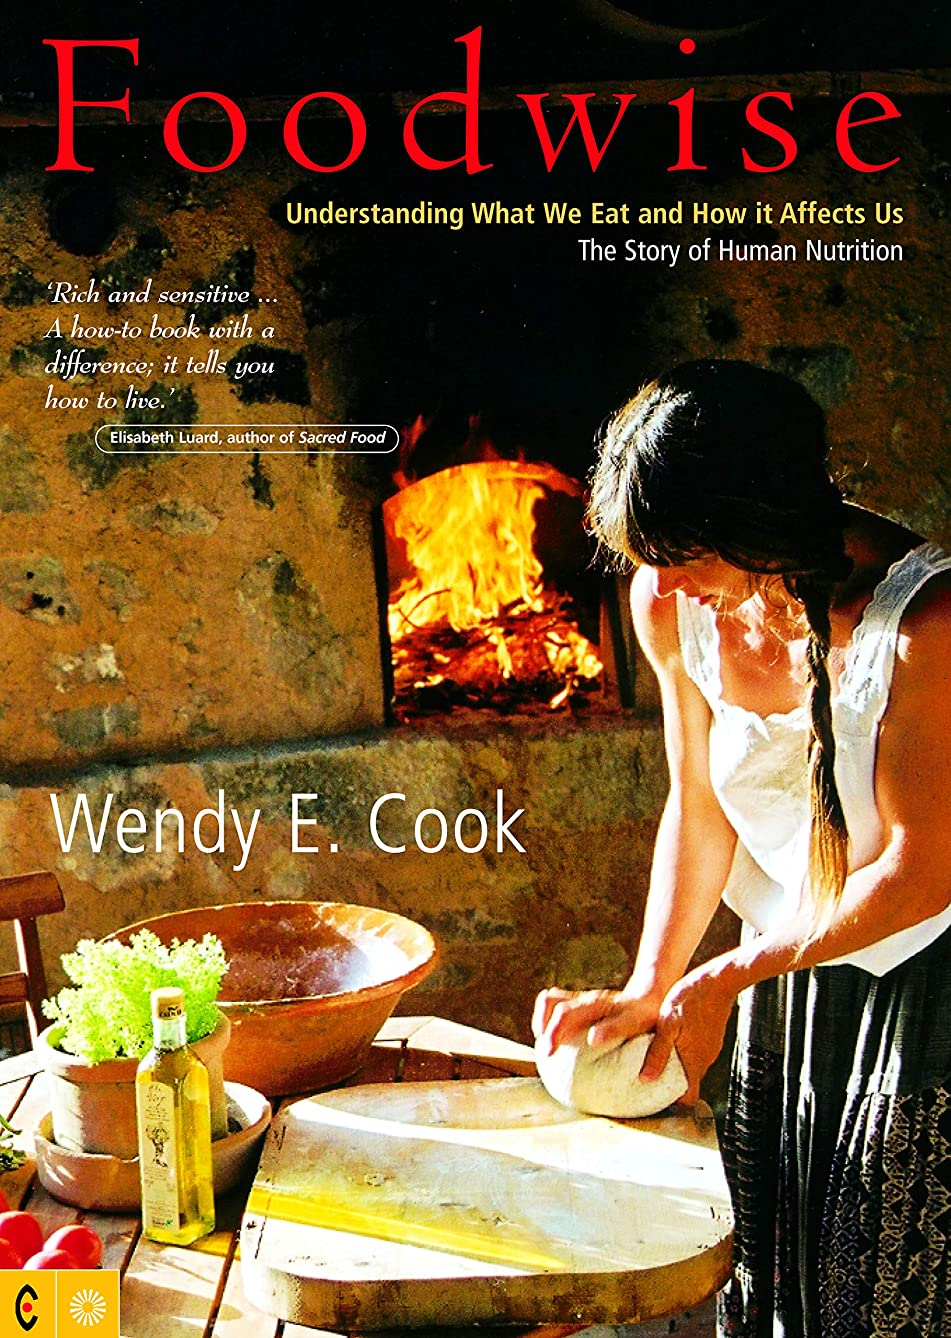 Foodwise: Understanding What We Eat and How it Affects Us, the Story of Human Nutrition (English Edition)